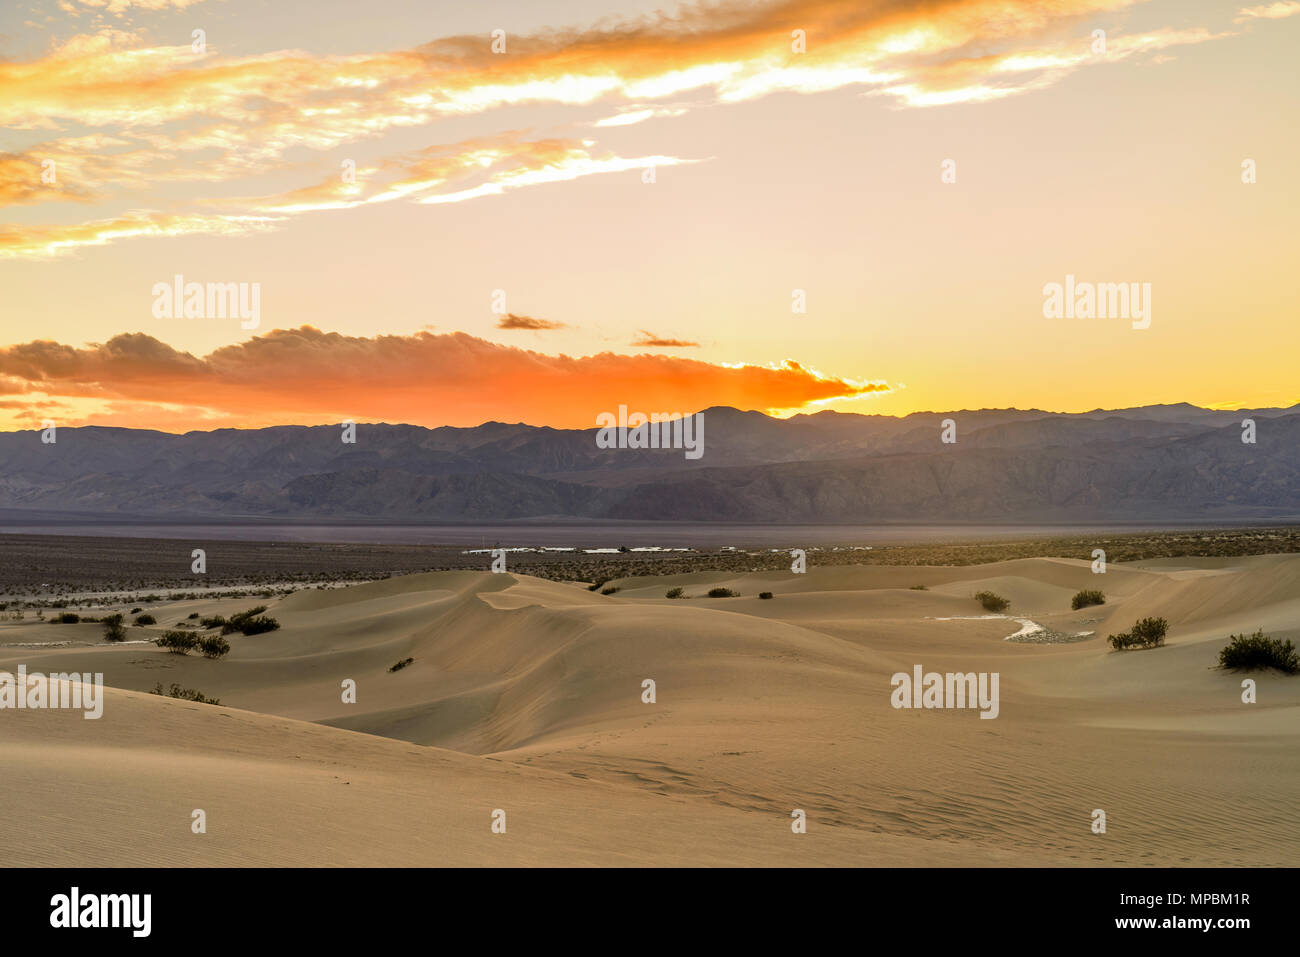 Spring Comes To Dunes >> Sunset Sand Dunes Spring Sunset At Mesquite Flat Sand Dunes With